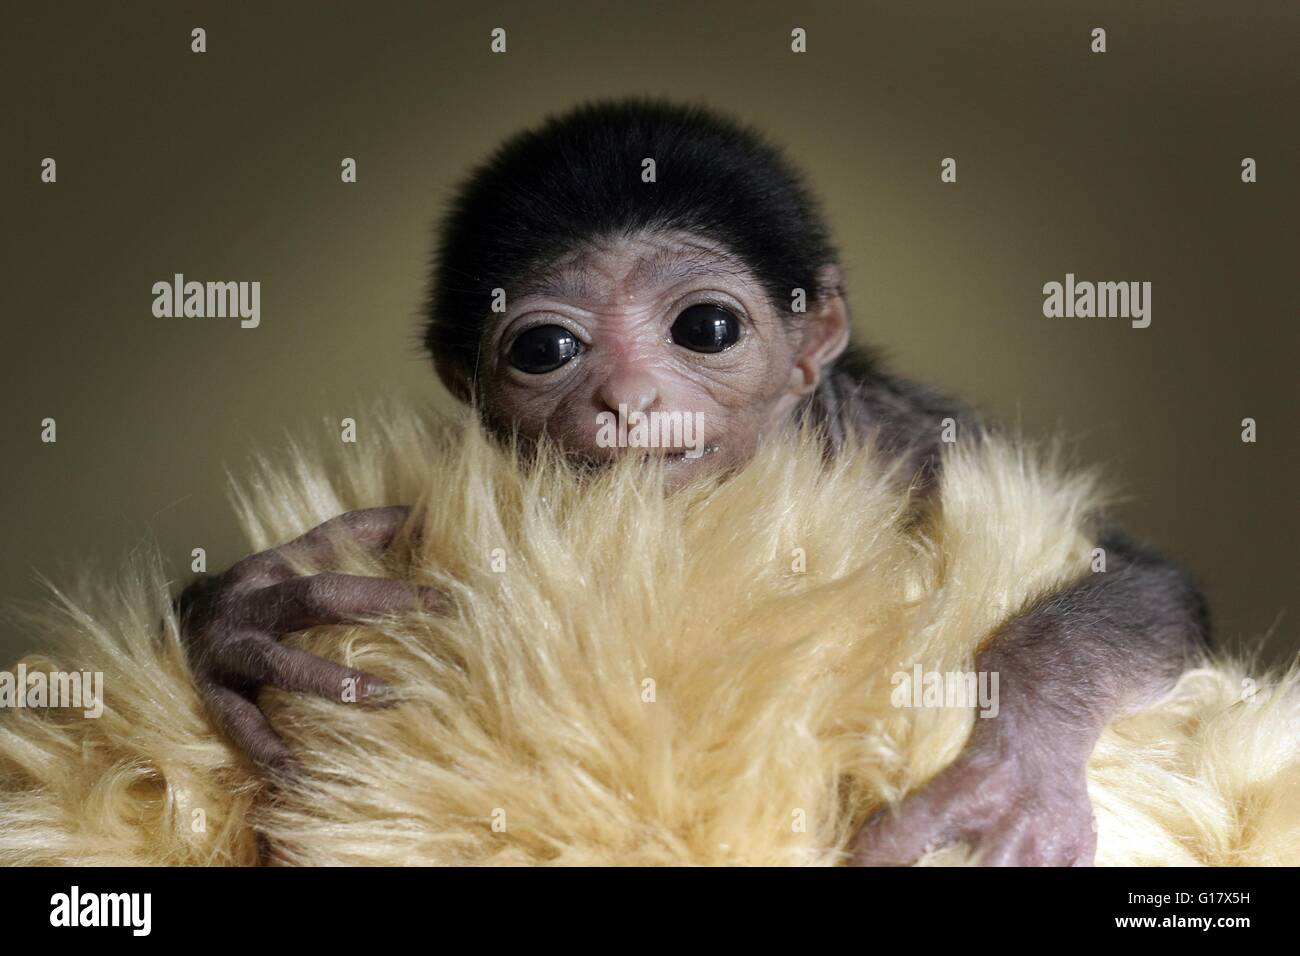 A baby Lar Gibbon wrapped in a fake fur to keep him warm.Stock Photo